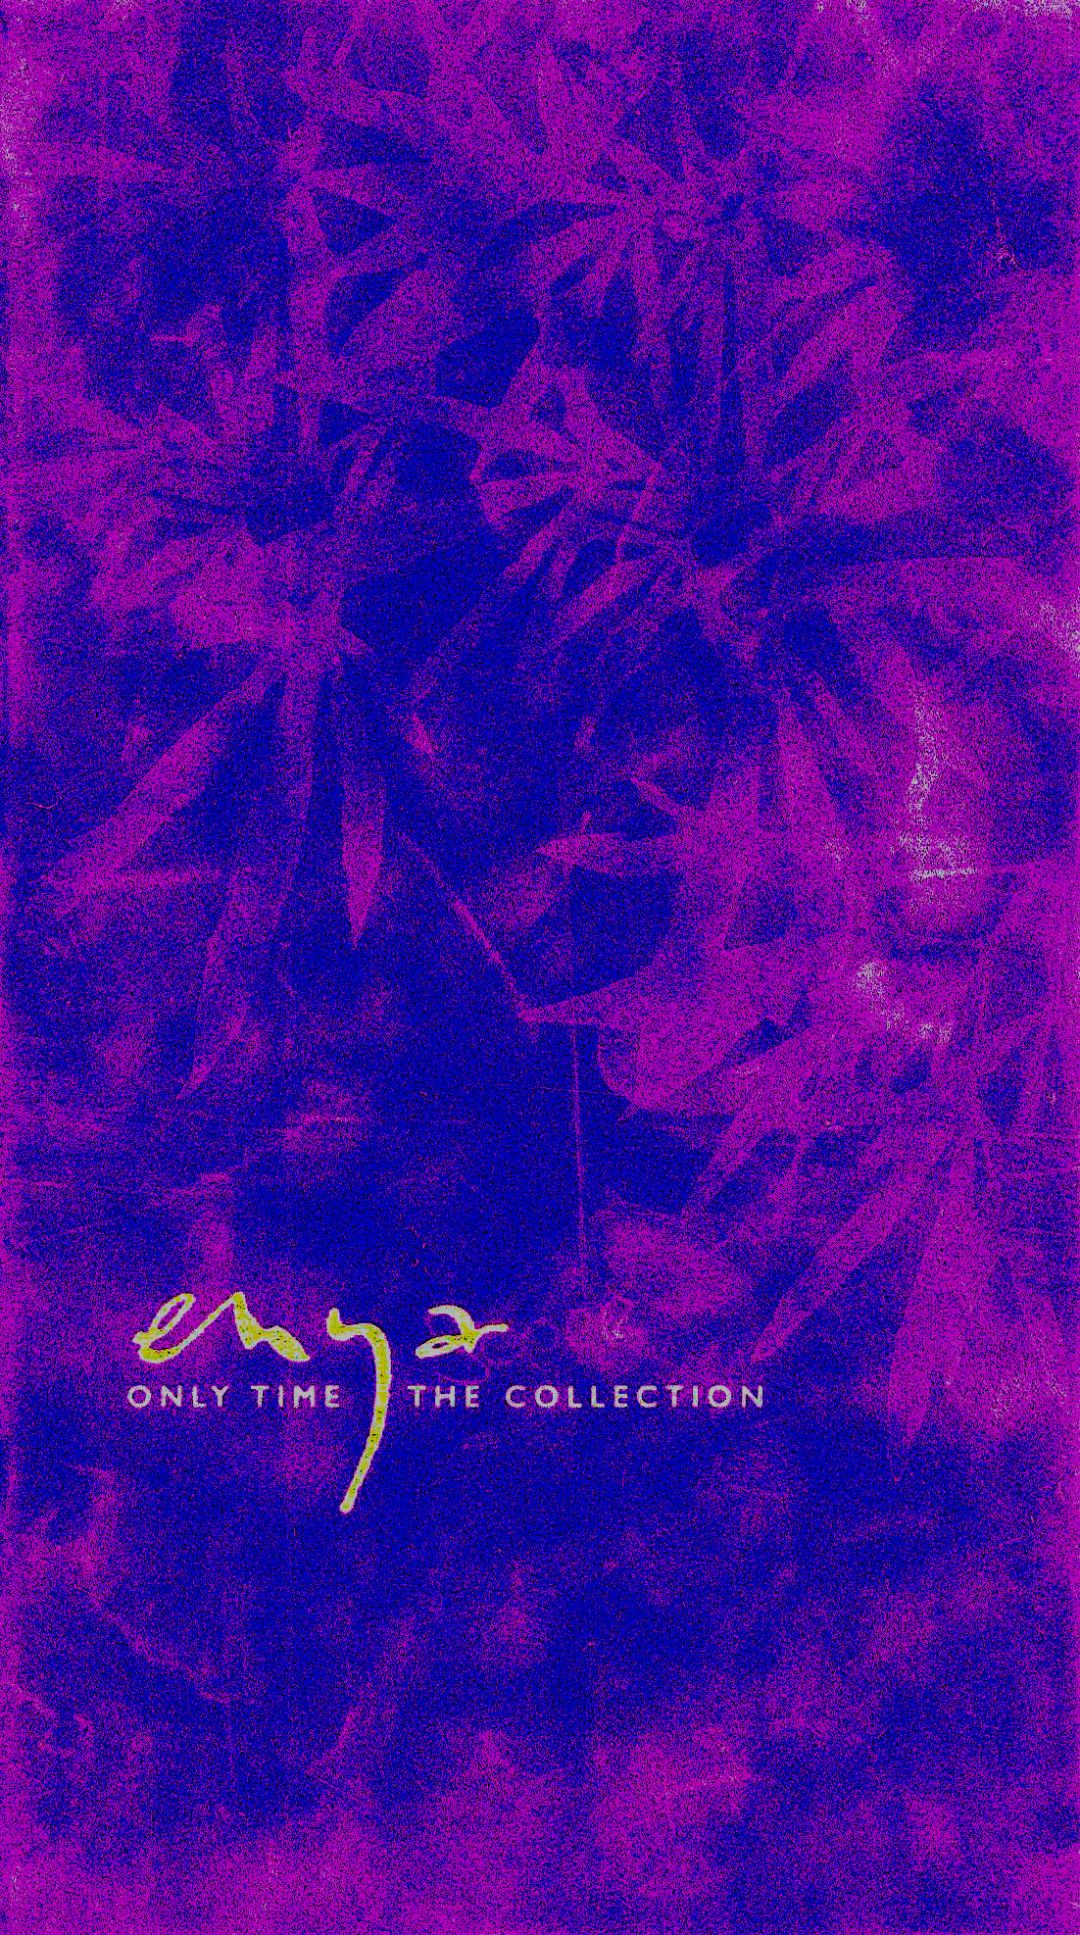 Only Time: The Collection